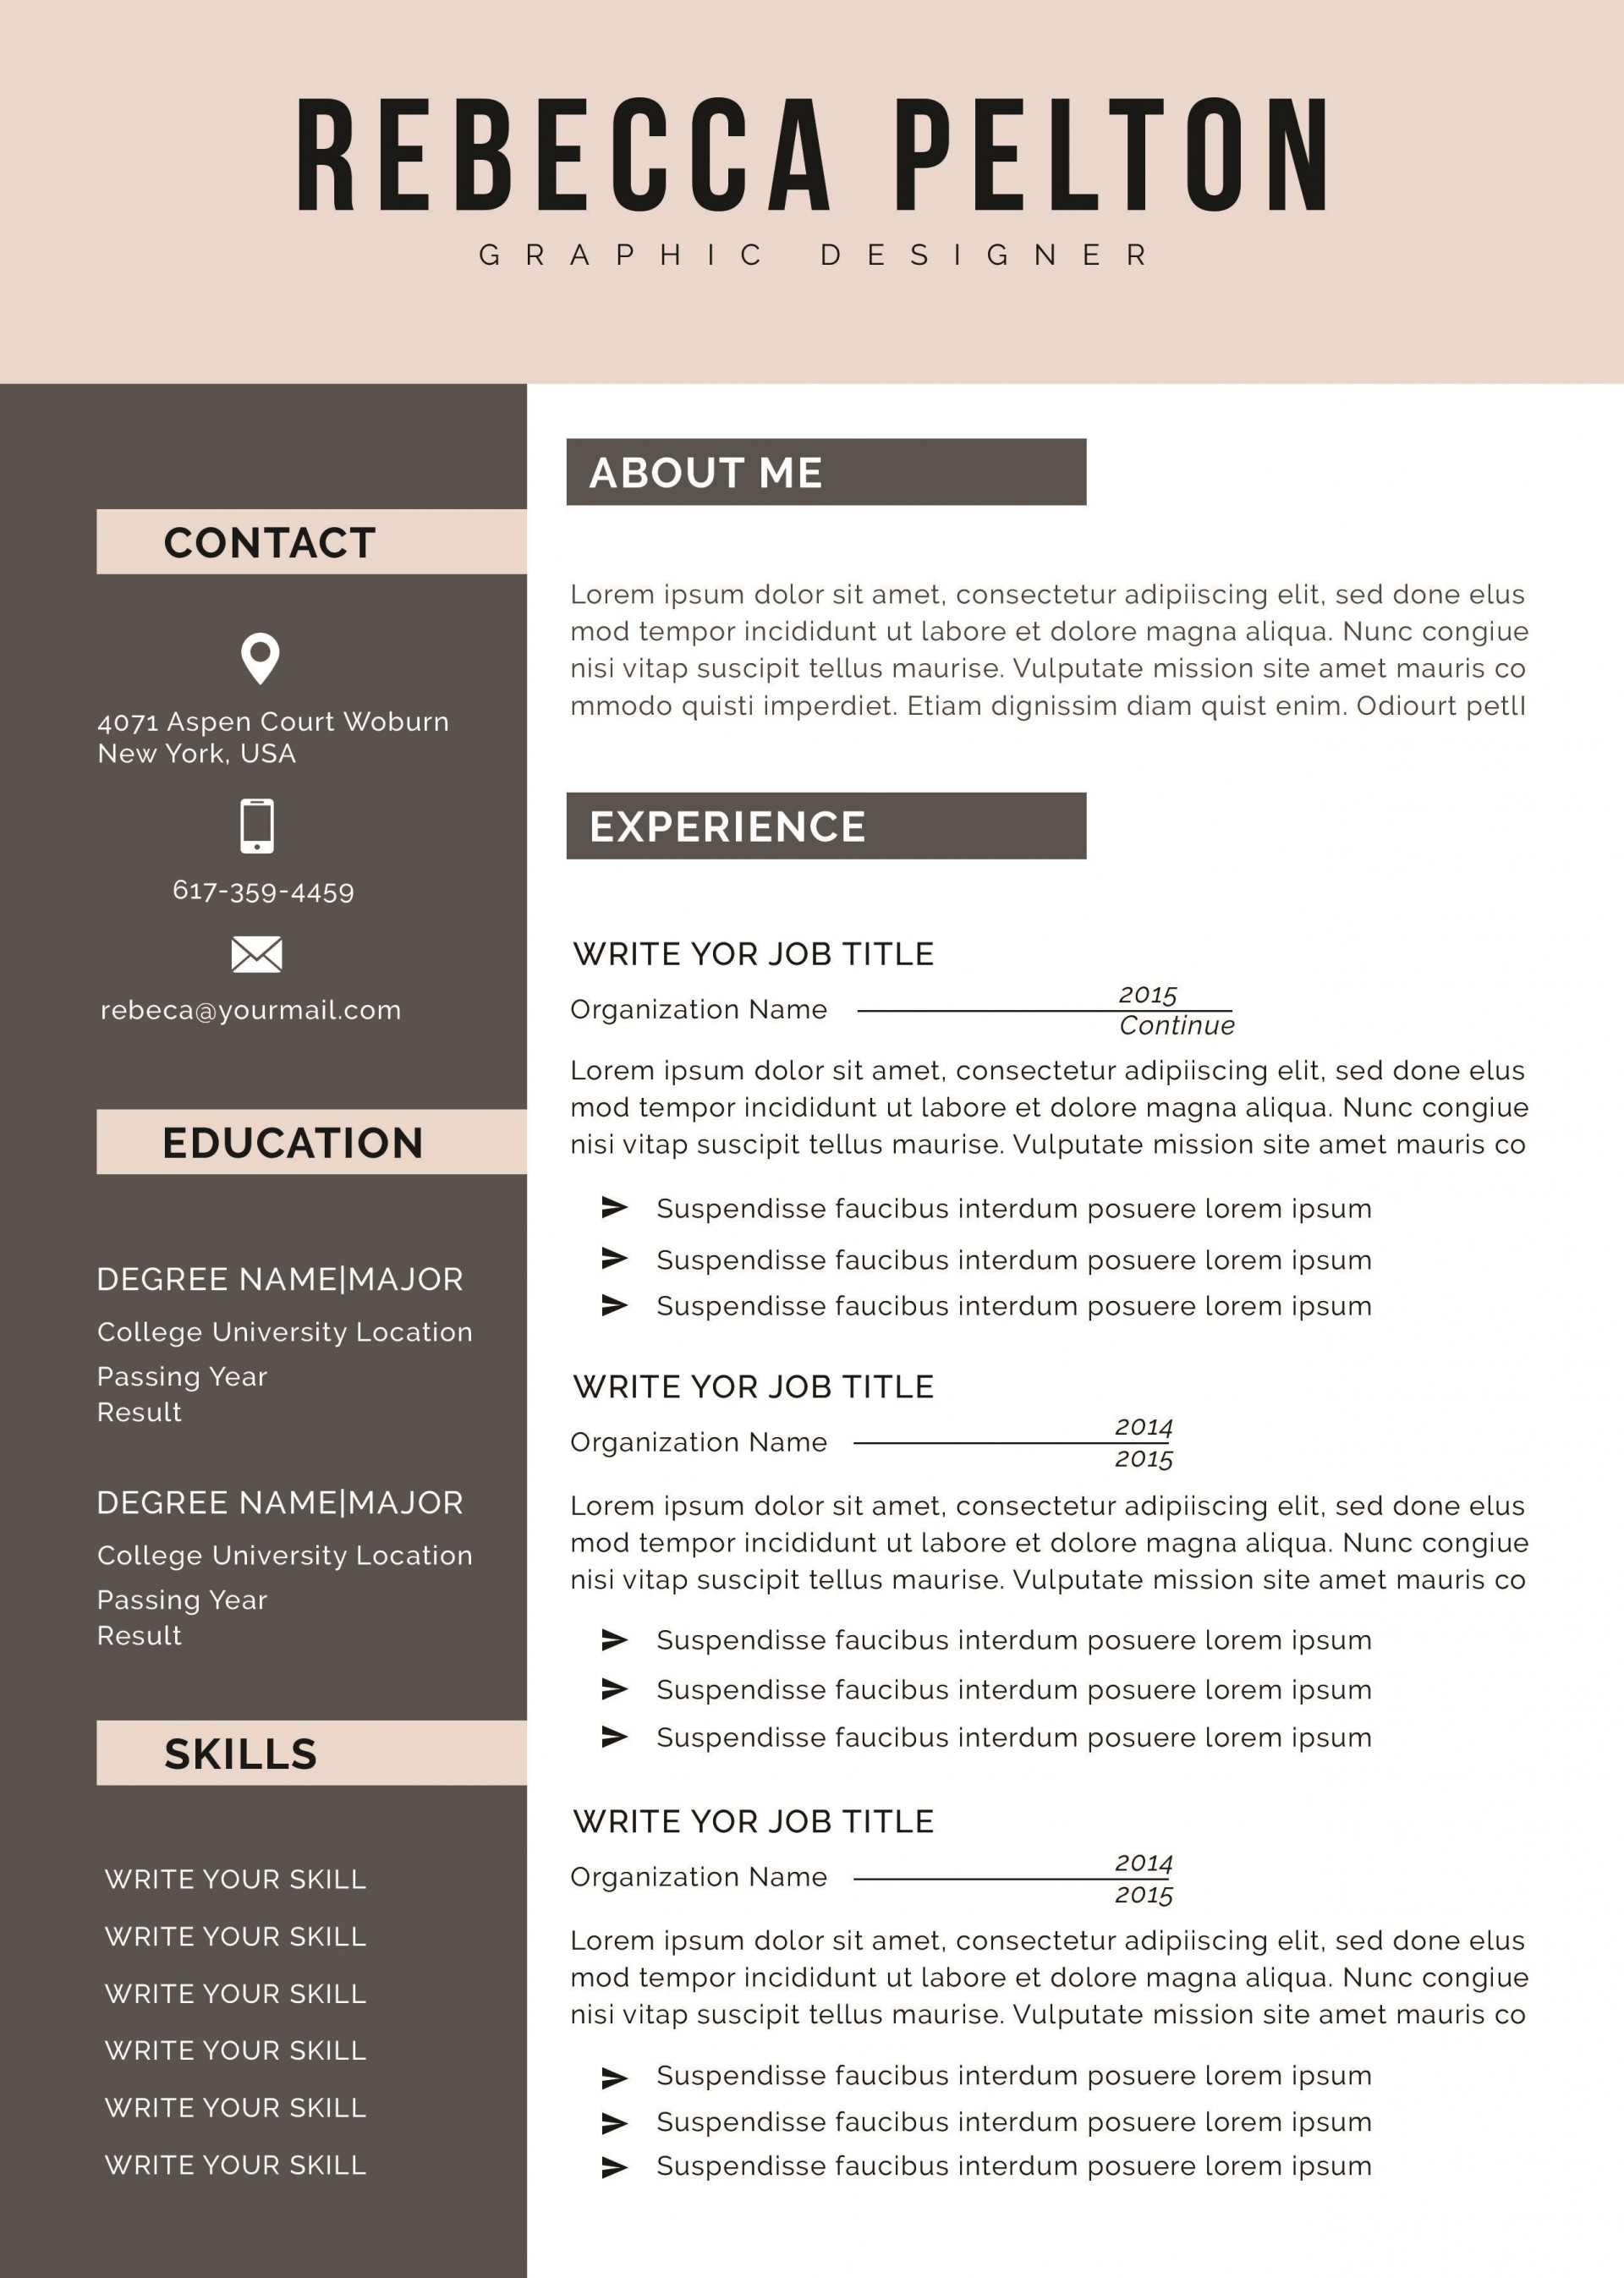 002 Frightening Professional Cv Template 2019 Free Download Inspiration 1920